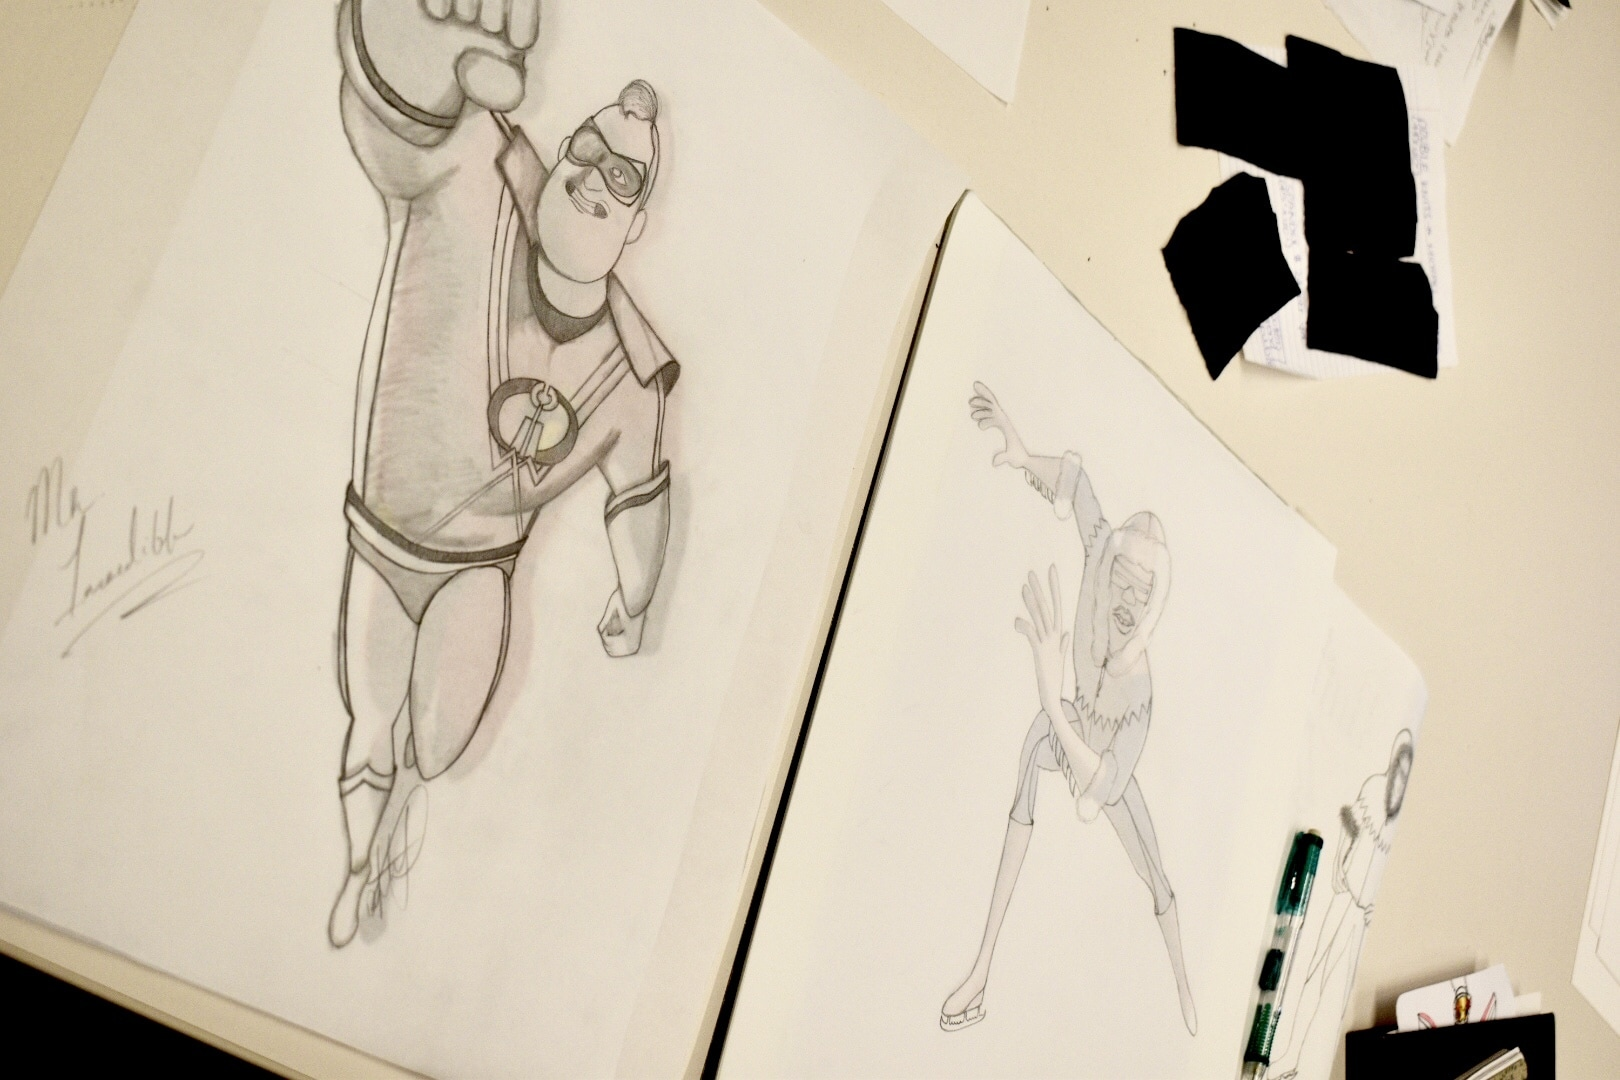 Incredibles 2 outfit design ideas sketch from FIDM students